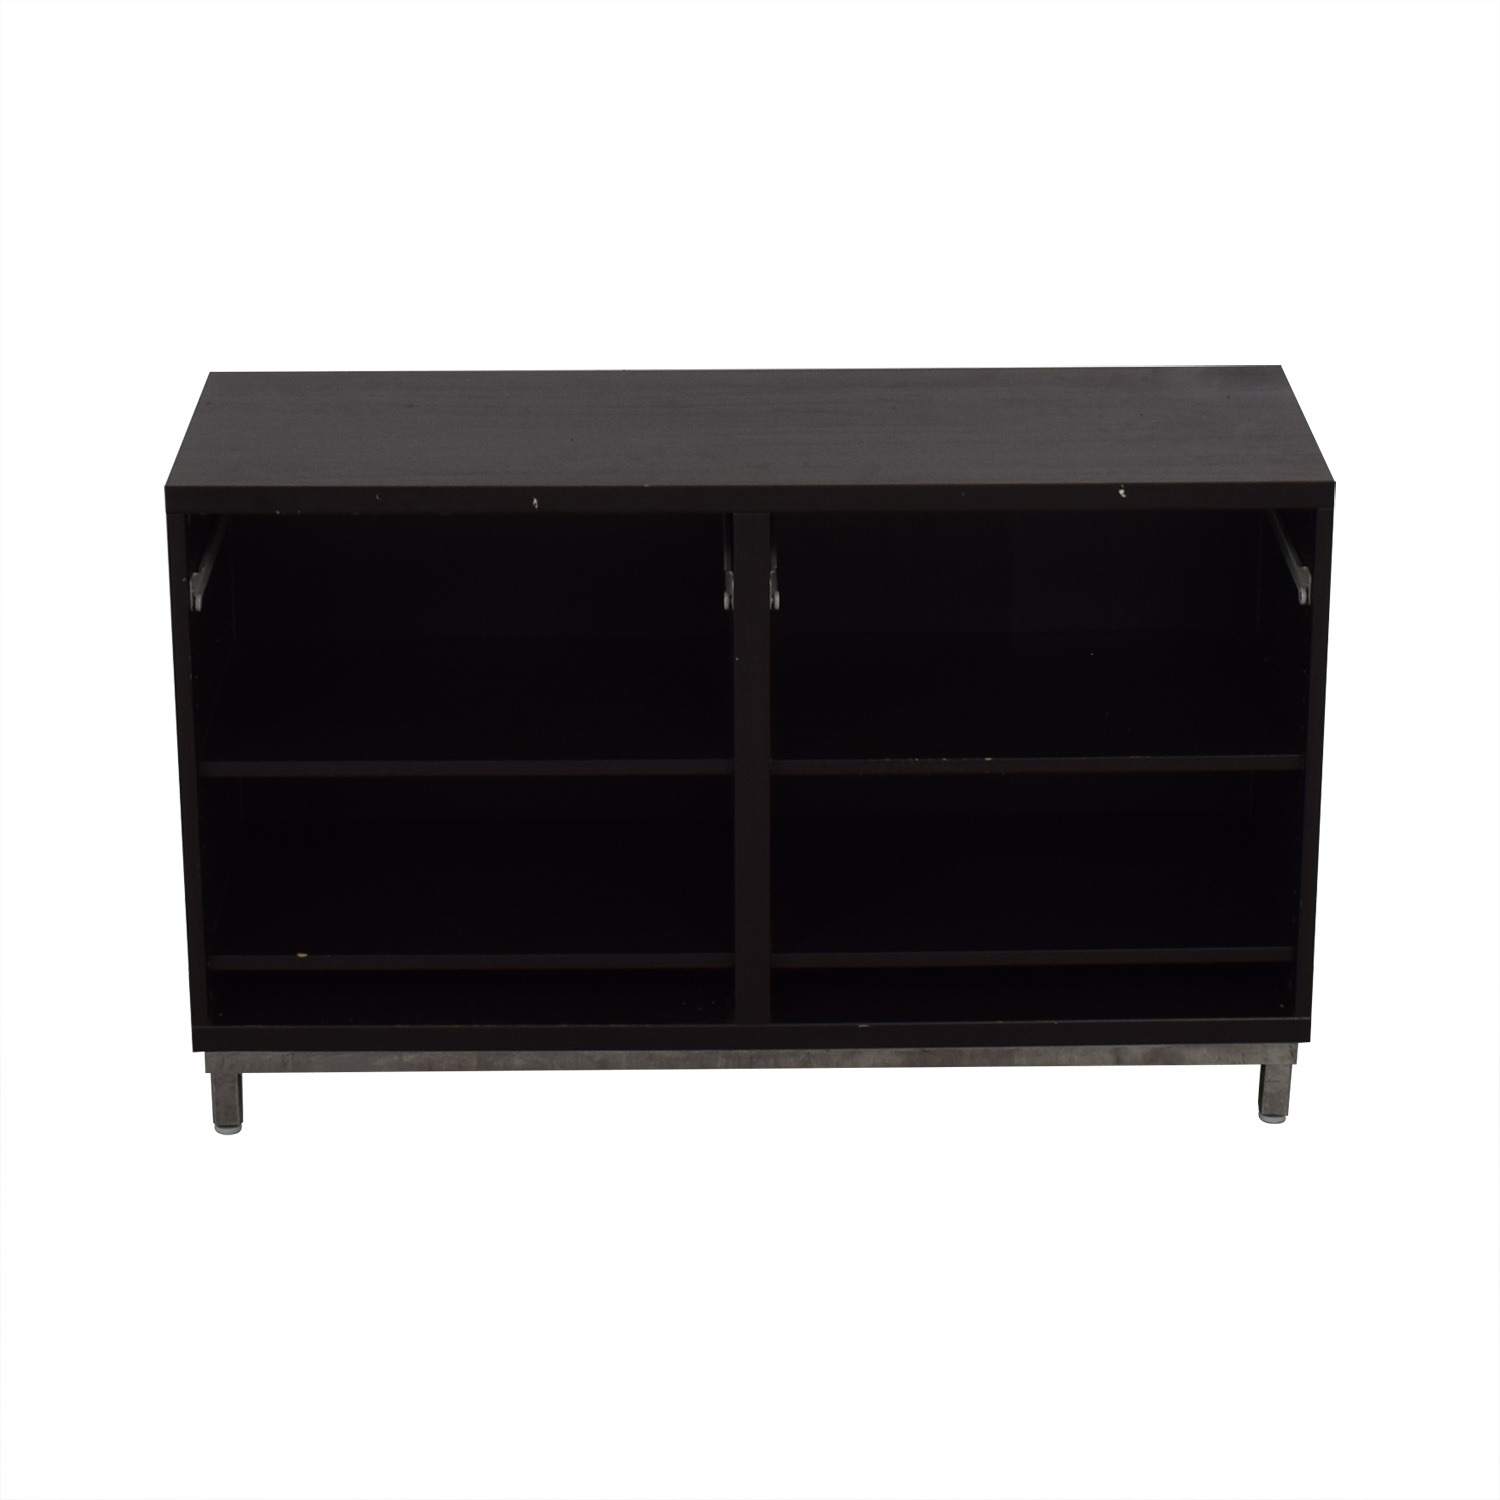 IKEA IKEA Black Credenza or Sideboard black